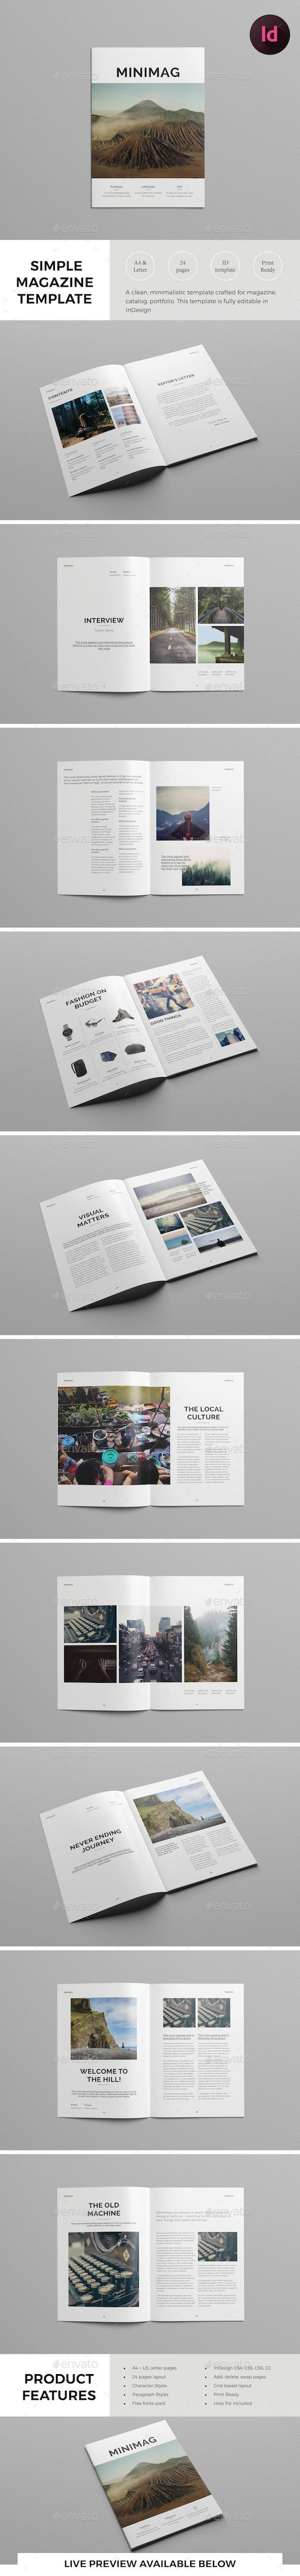 black and white, catalog, clean, fashion, indesign magazine template, indesign template, layout, lifestyle, lookbook, magazine, magazine template, modern, portfolio, print, professional, simple, simple magazine, template, trendy, typography, whitespace, print-templates, magazines Other Magazines Item Overview A clean, simple, minimalistic magazine template that is suitable for magazines, catalogs, portfolio etc. Detail description of this item is given below. Features A4 & US Letter. 300 DP...